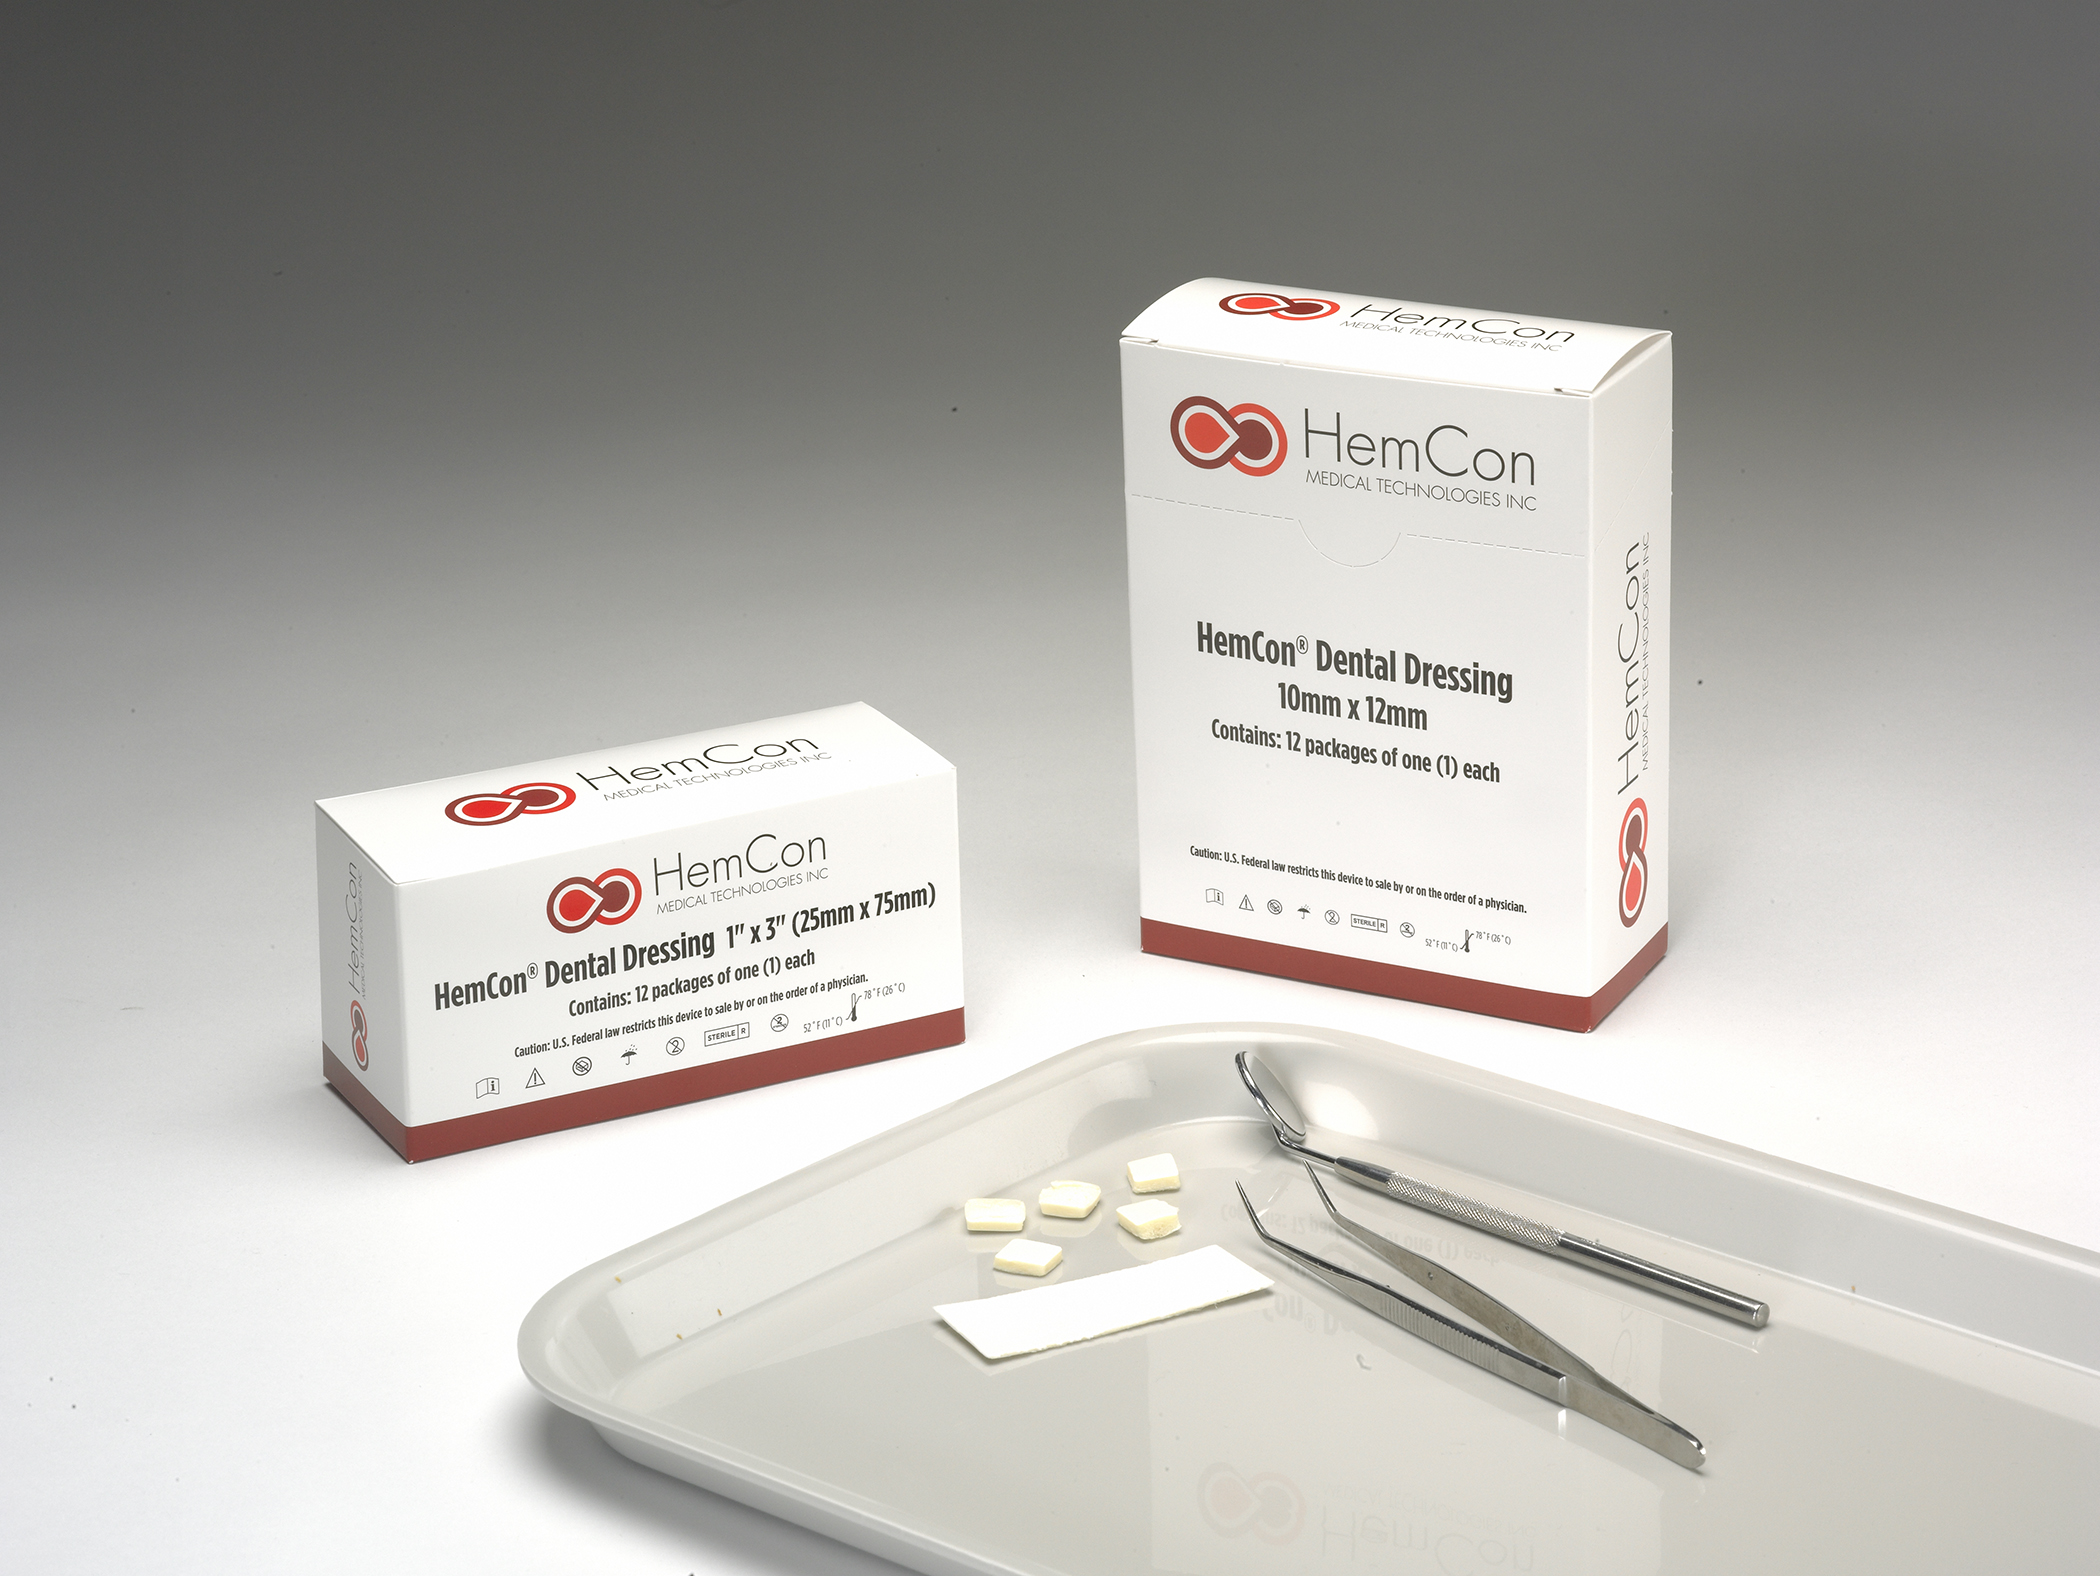 Traitement Anti Humidite Chambre : HemCon Medical Technologies, Inc signs exclusive global